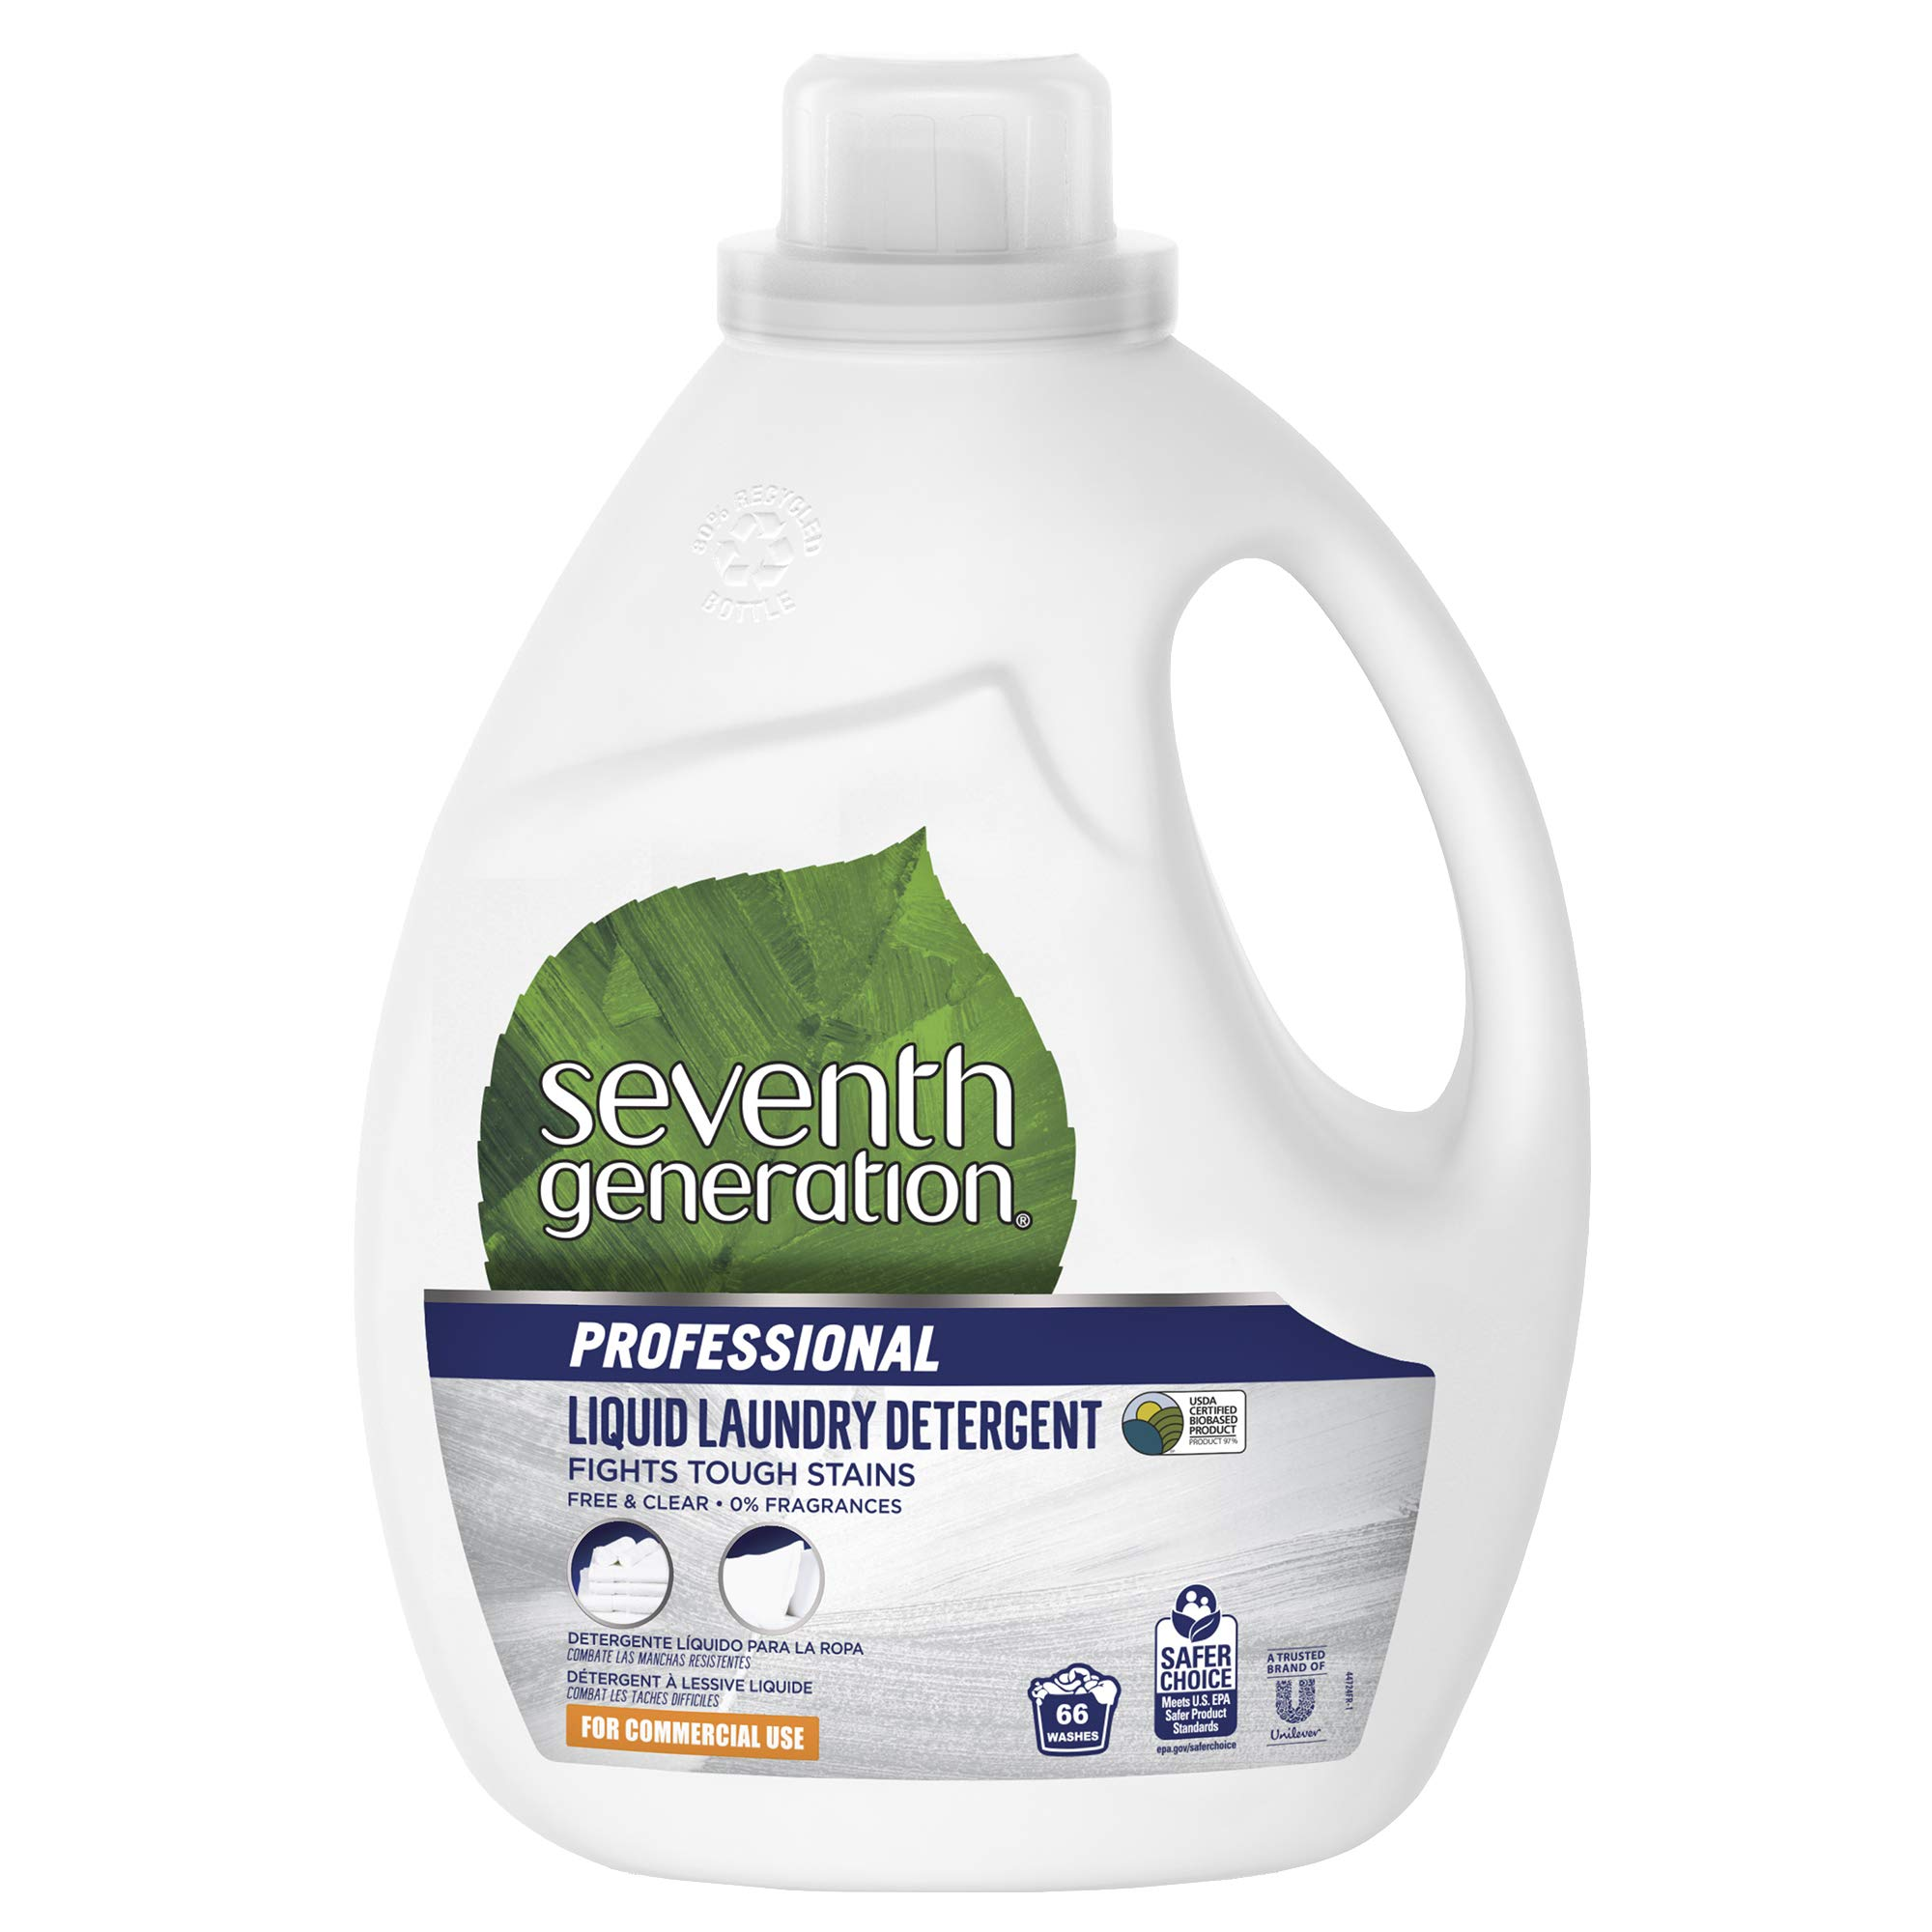 Seventh Generation Professional Liquid Laundry Detergent, Unfragranced, 100 Fluid Ounce (Pack of 4)